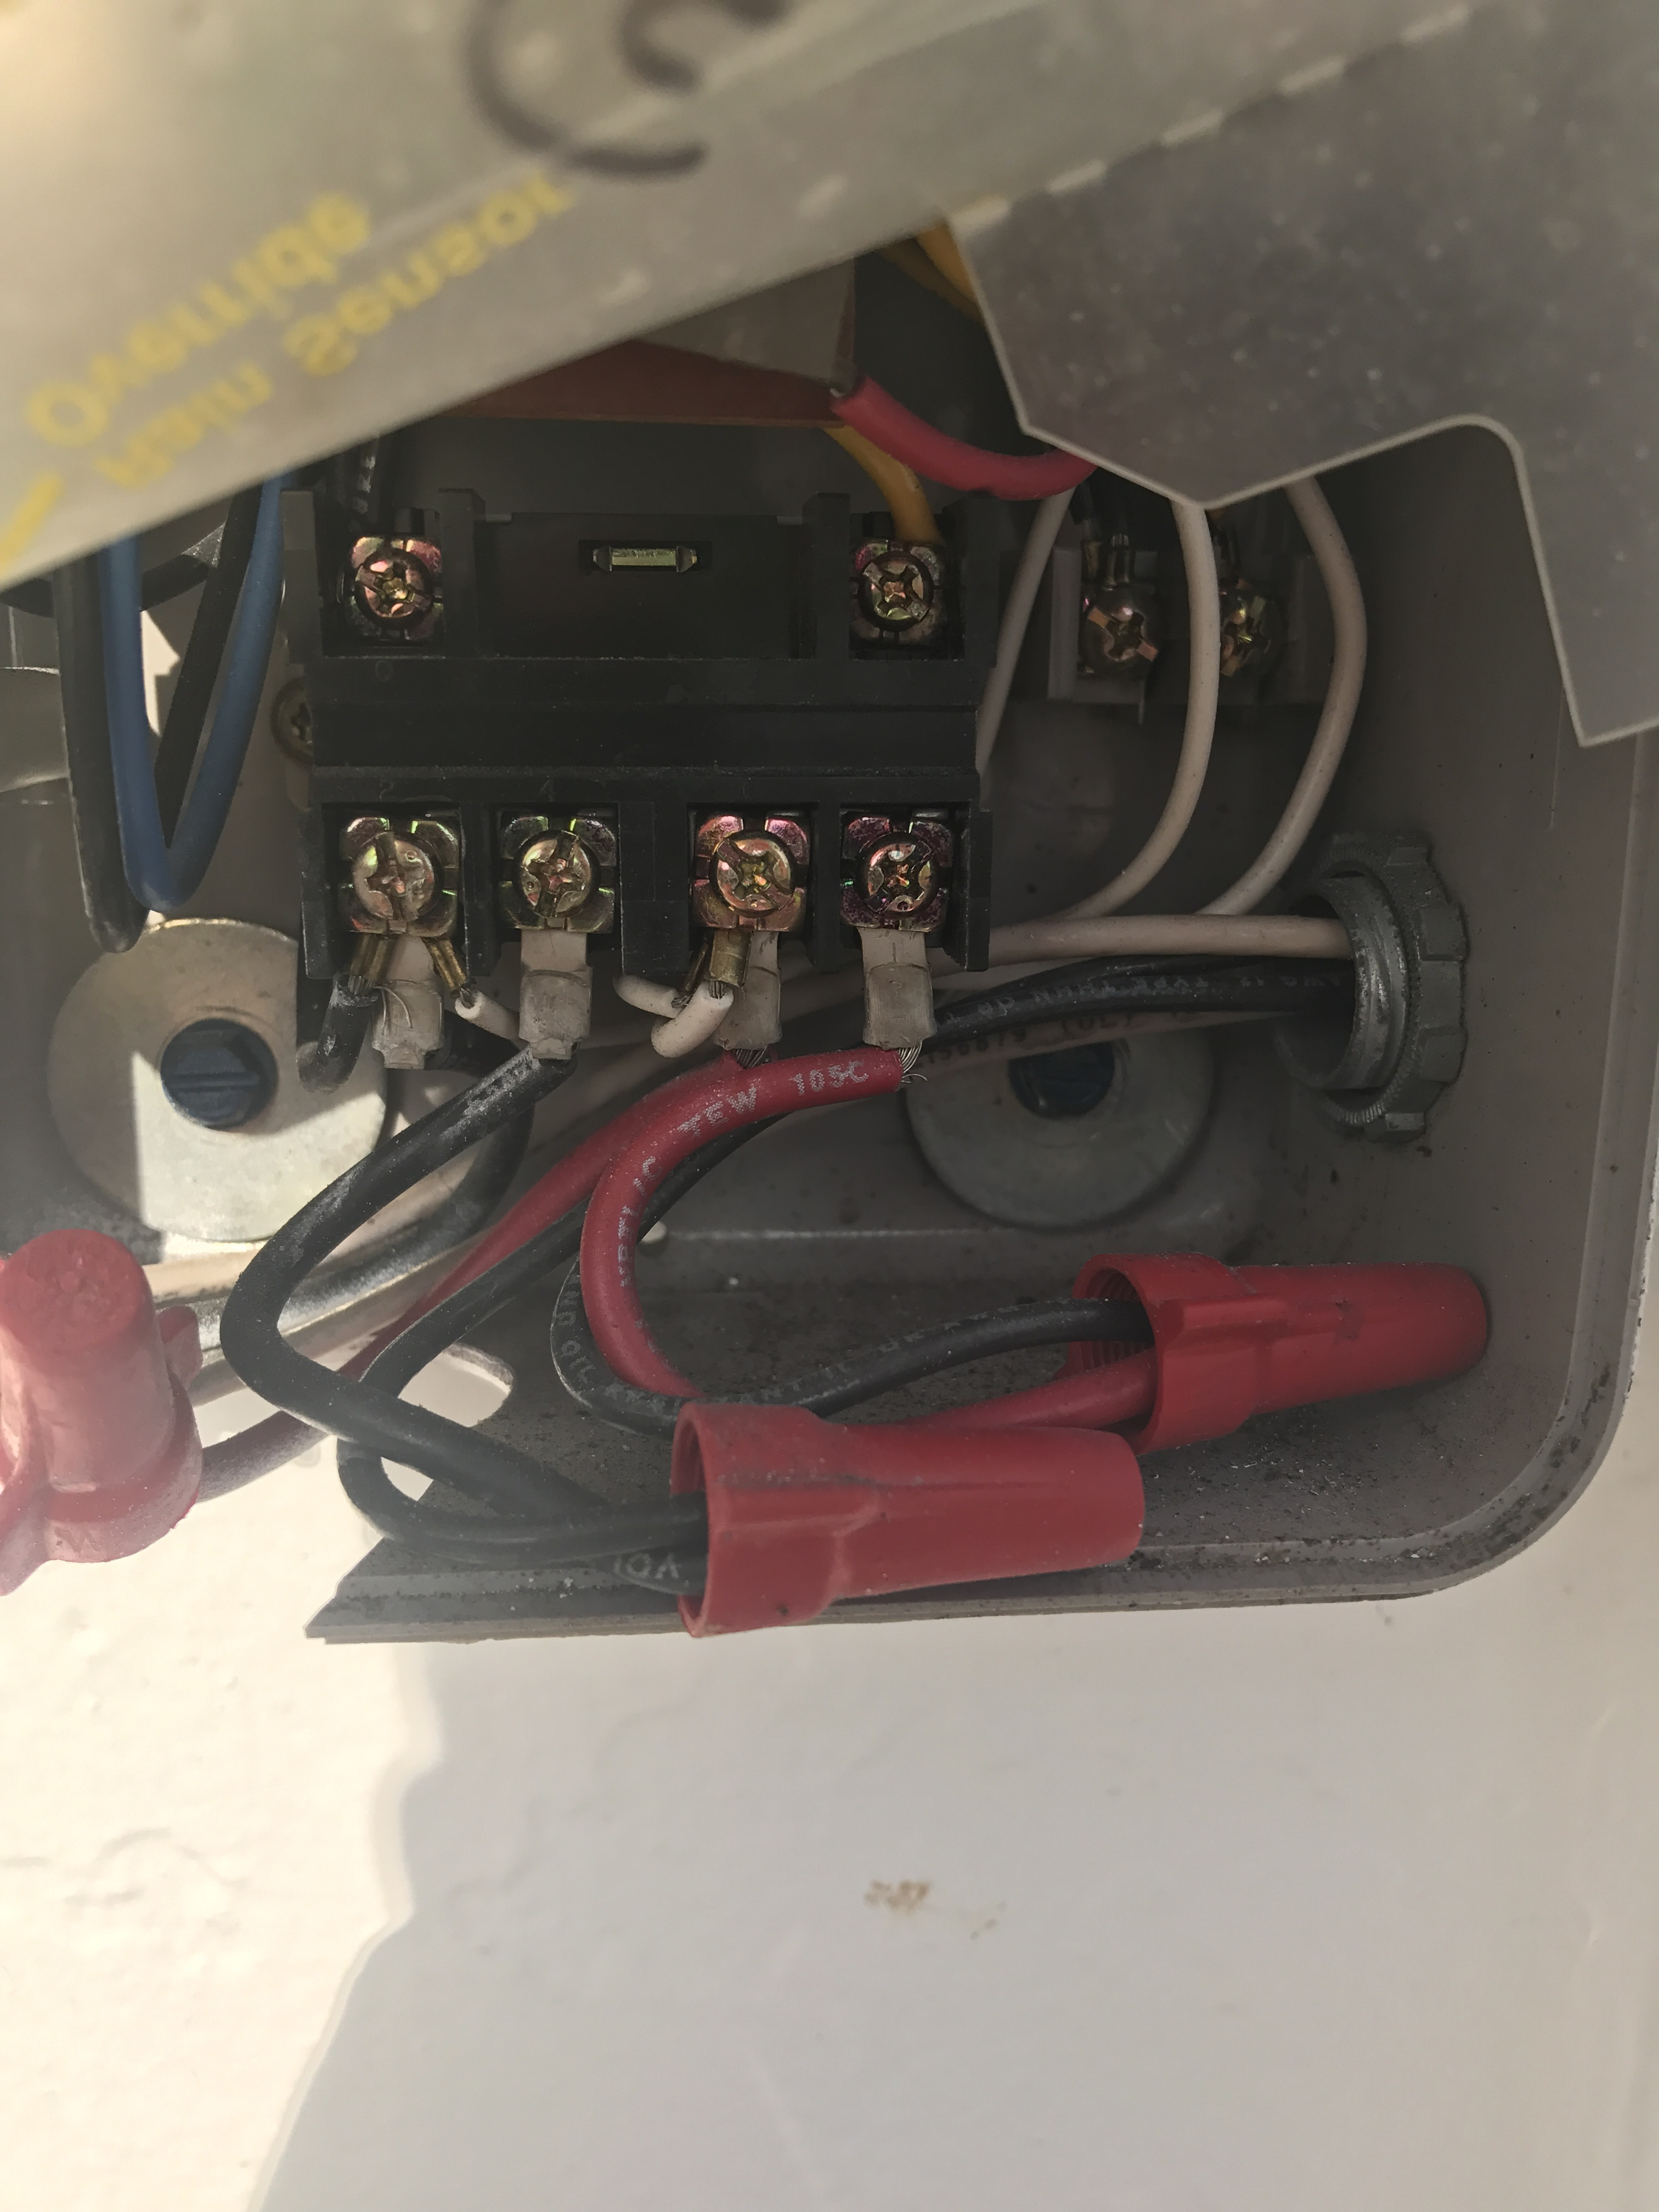 Intermatic Mechanical Timer Replace Sprinklers Irrigation Wiring Diagram Img 14933024x4032 145 Mb